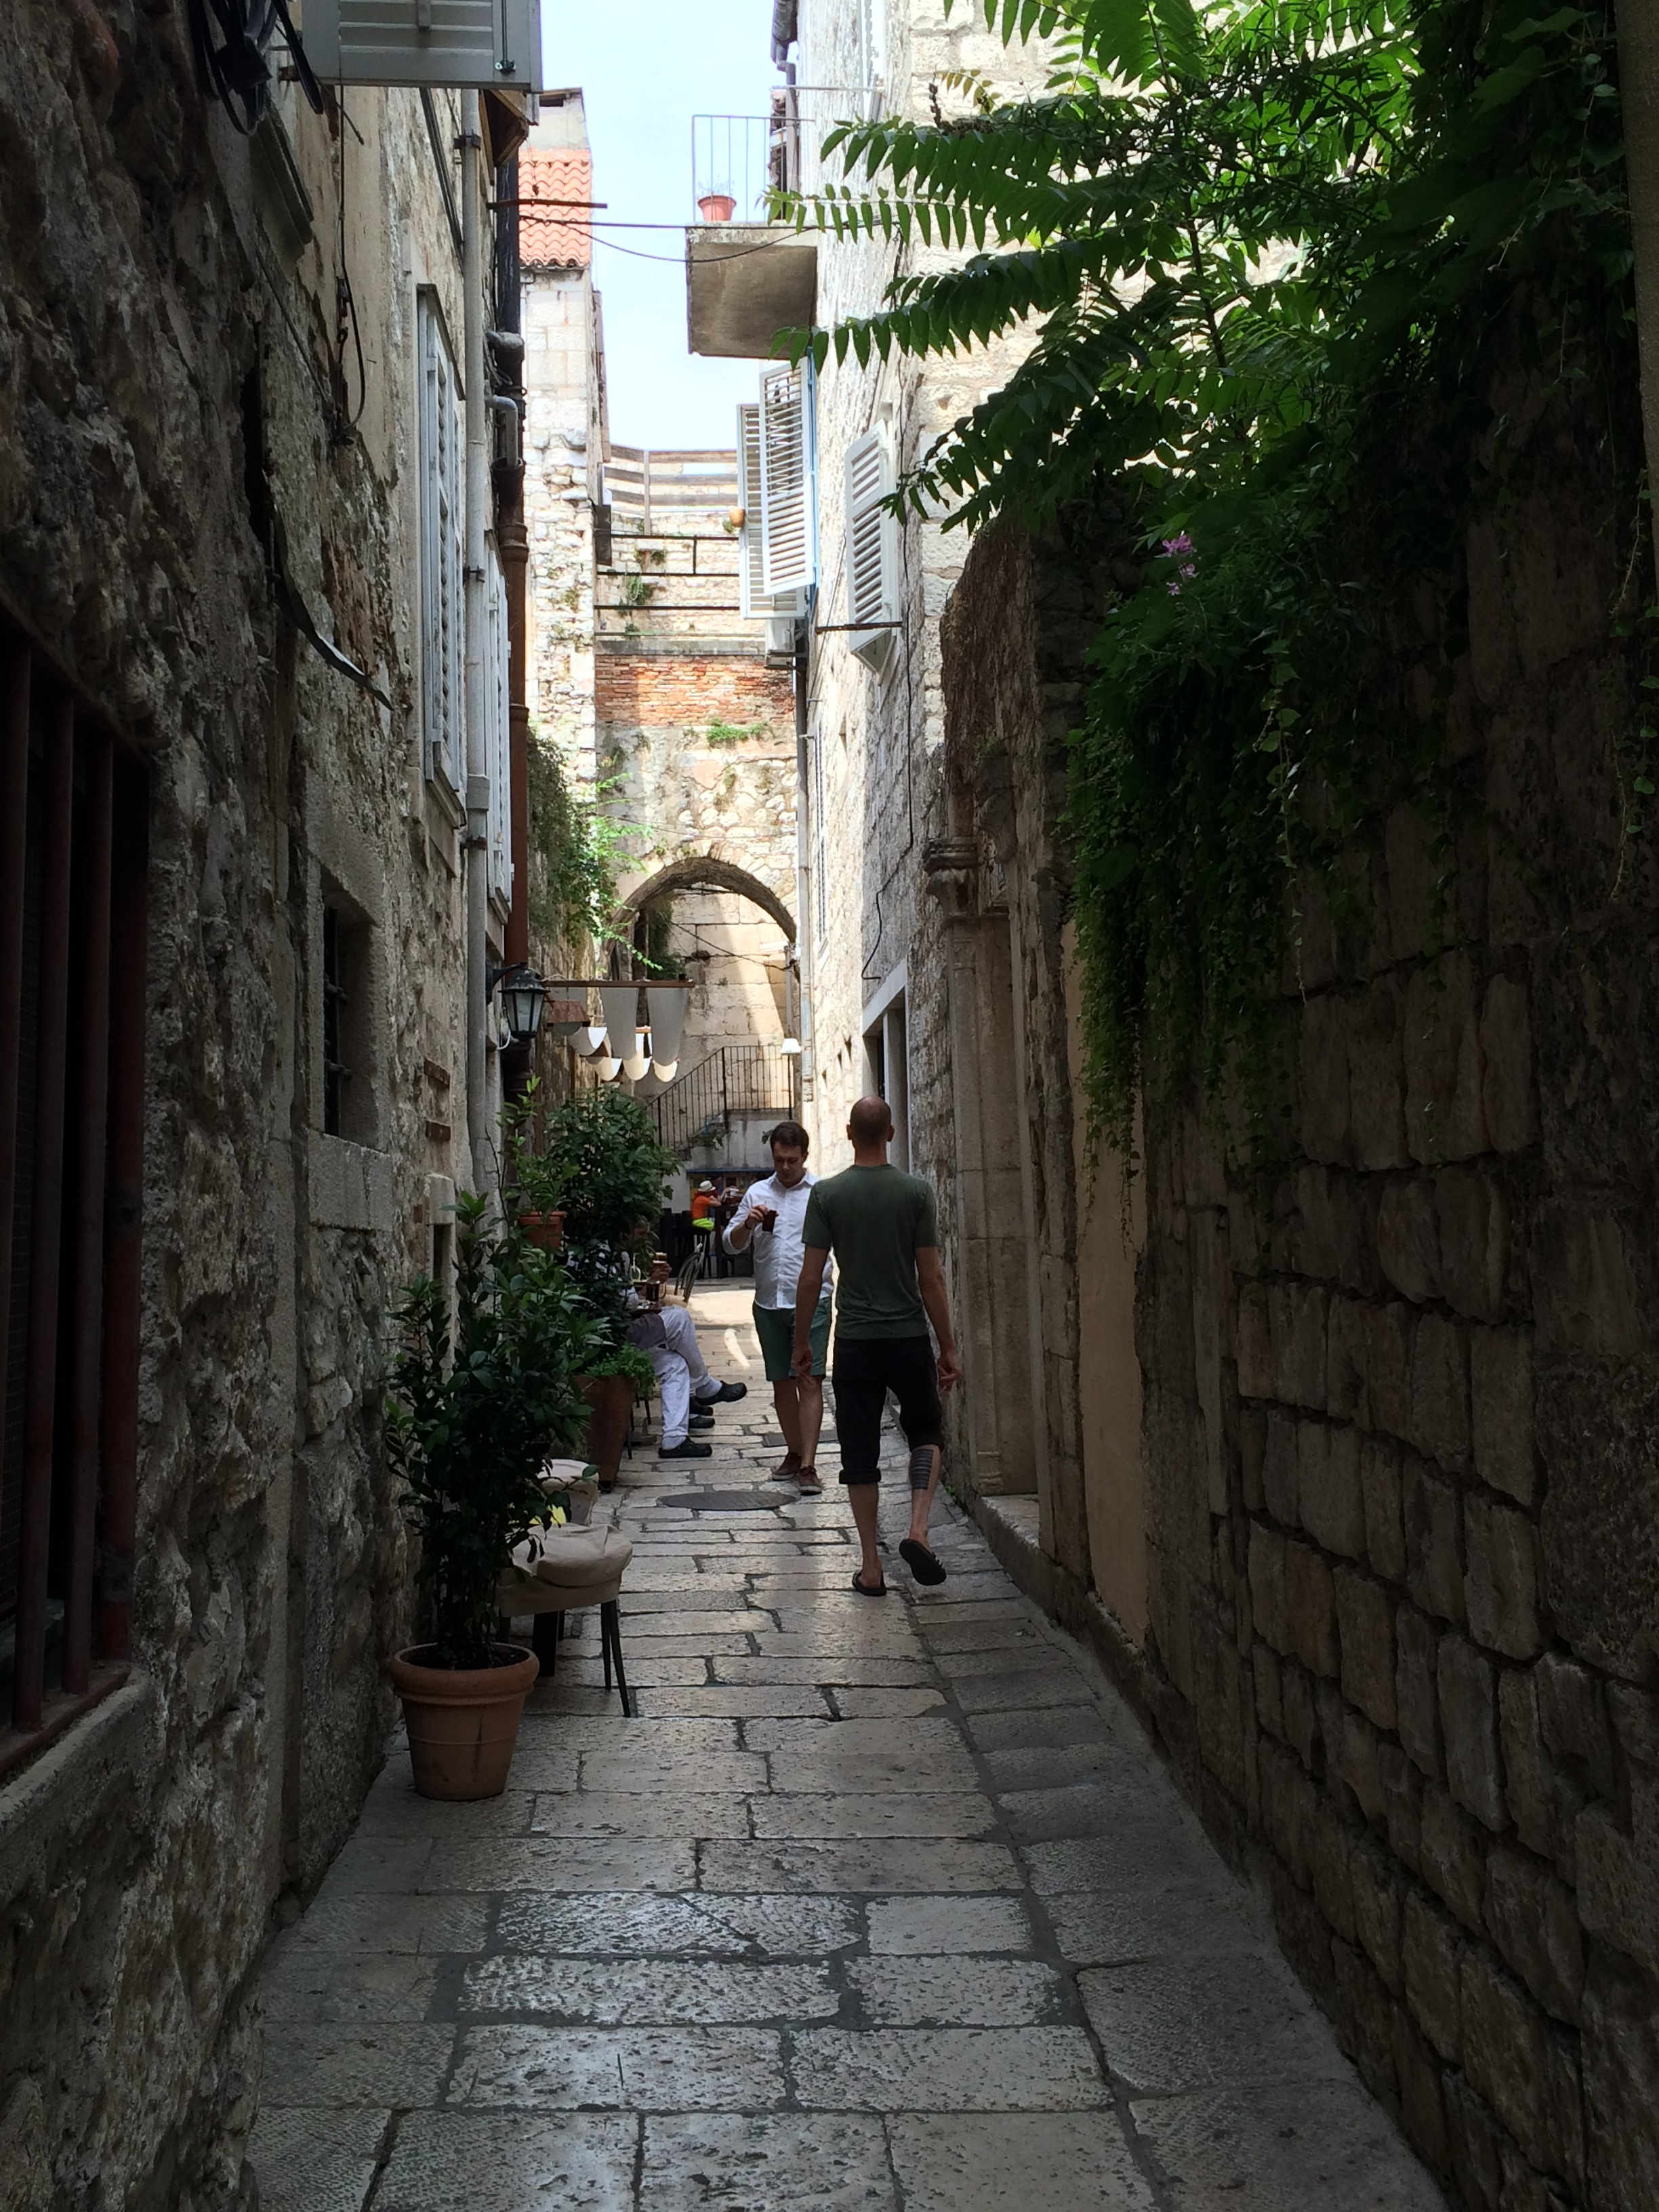 Typical alley in Split Old Town